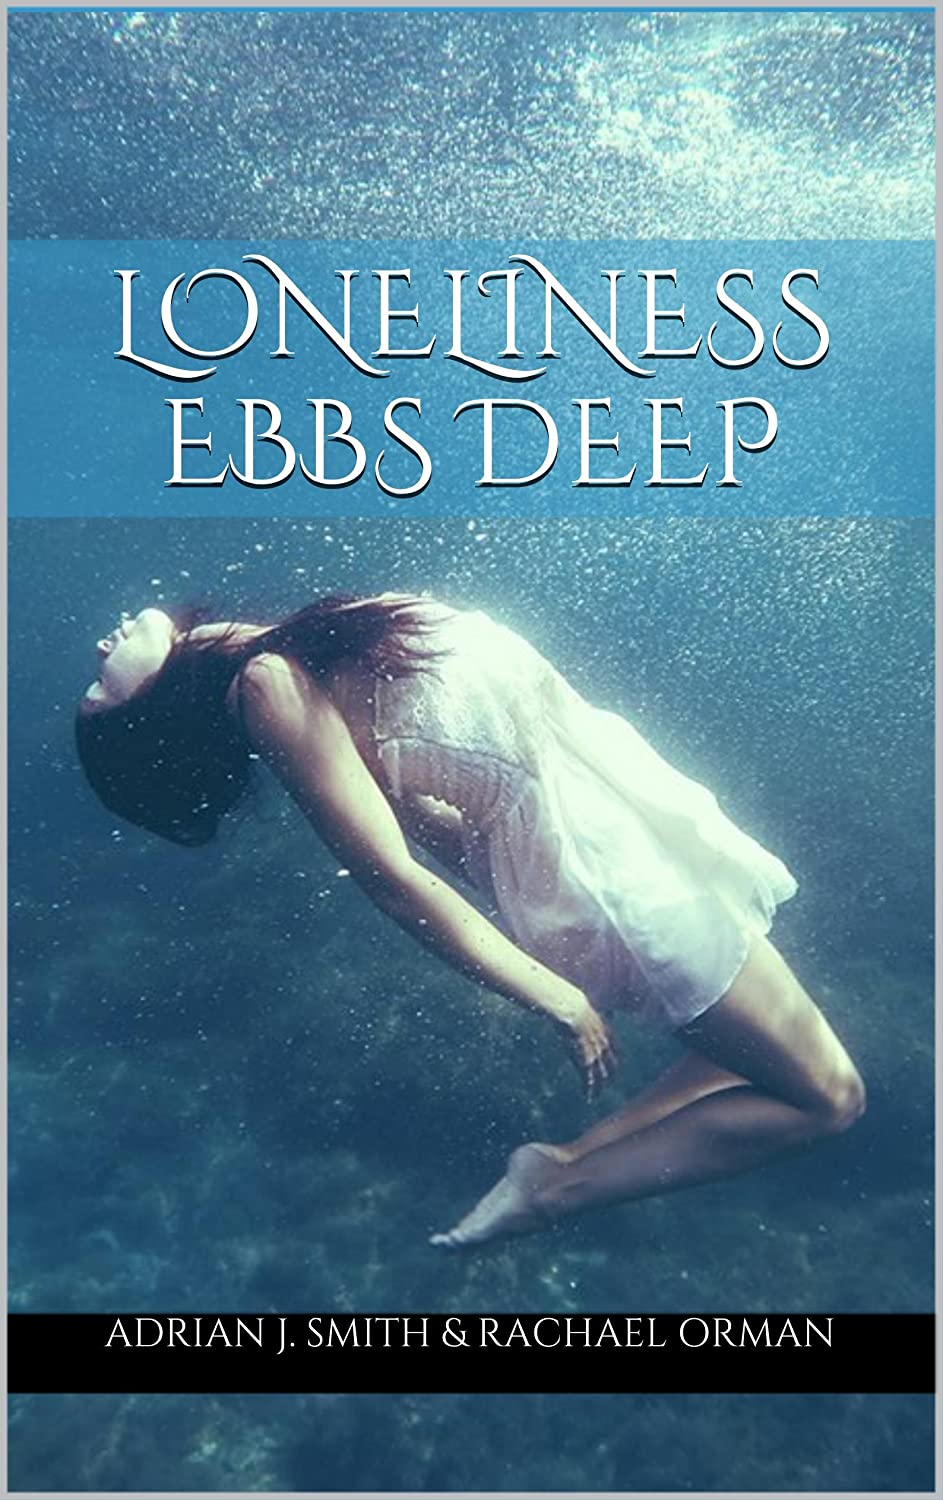 Book Review: Loneliness Ebbs Deep by Adrian J. Smith and Rachael Orman